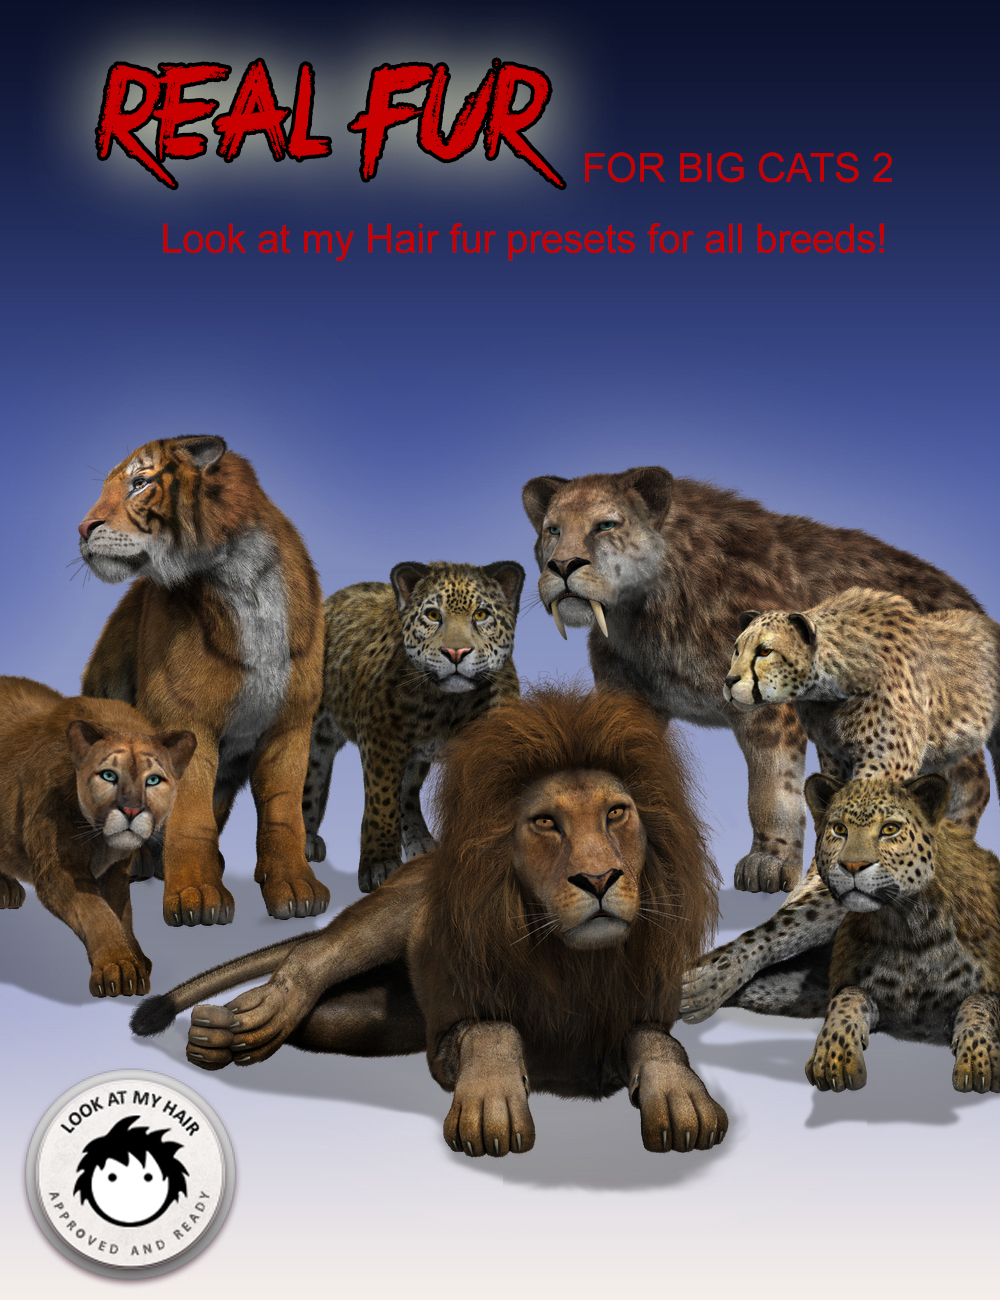 Real Fur for DAZ Big Cat 2 by: Alessandro_AMKendall Sears, 3D Models by Daz 3D